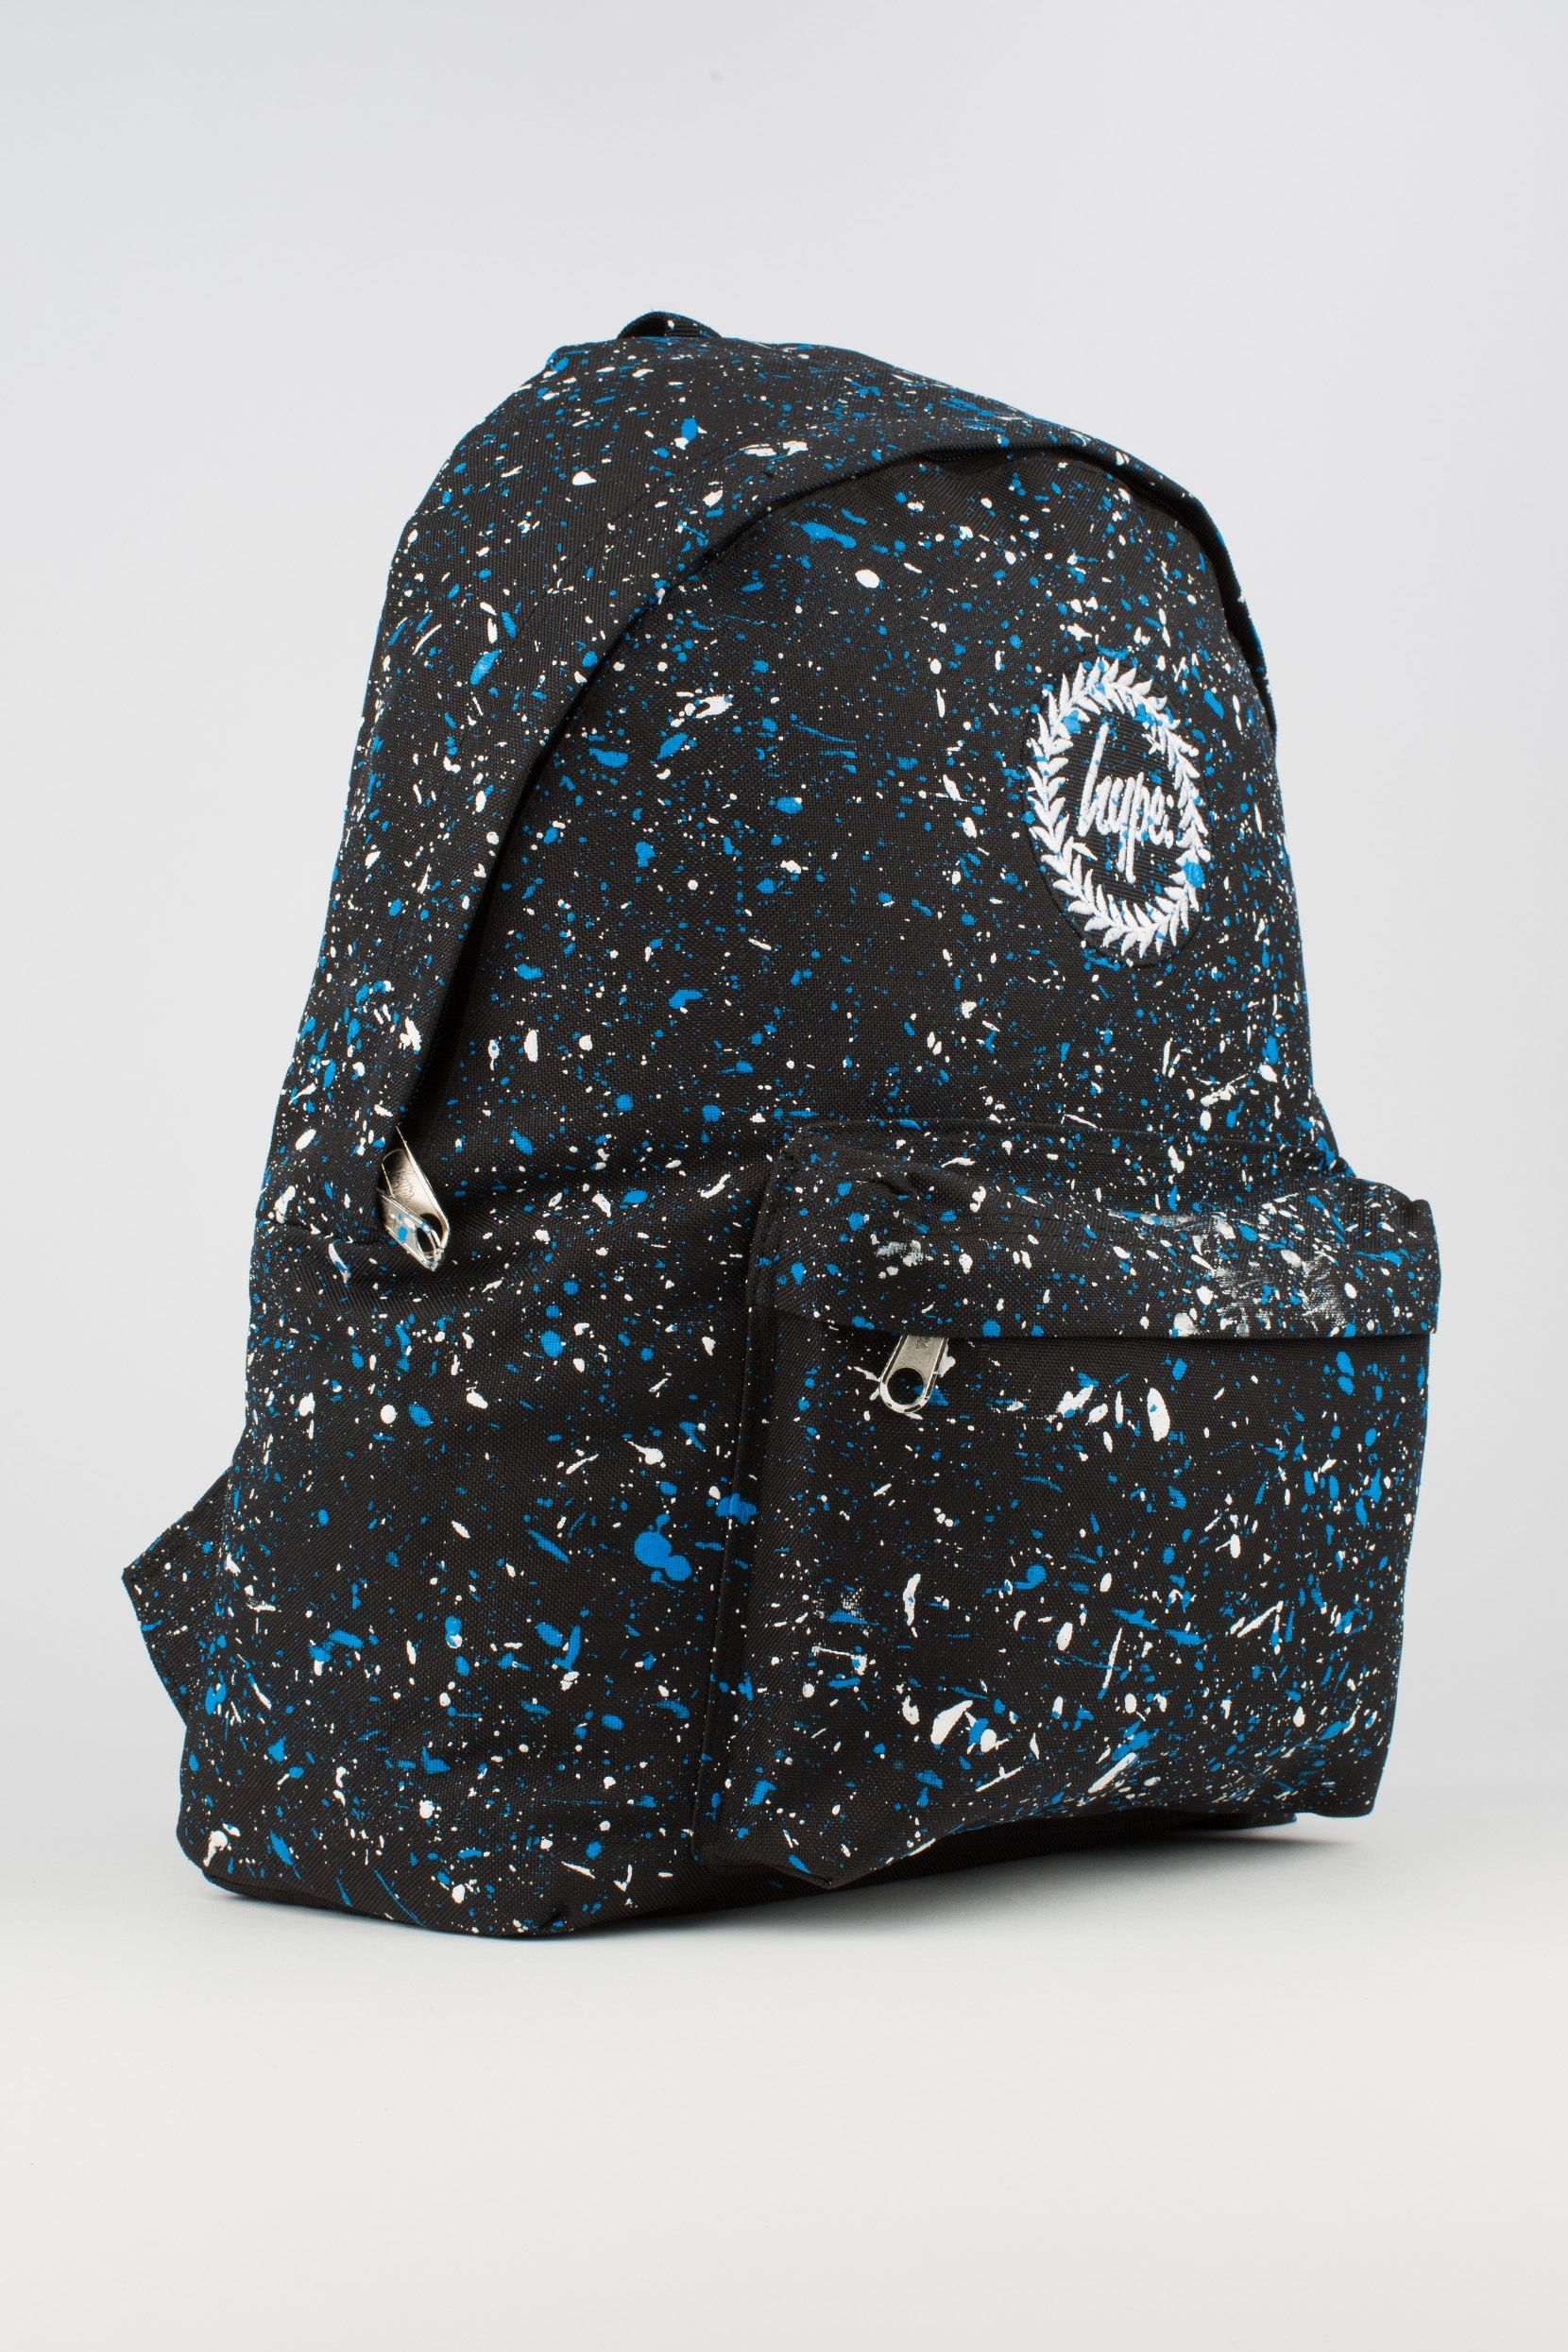 HYPE BLACK WITH BLUE   WHITE SPECKLE BACKPACK - HYPE®  700f513dbc53e